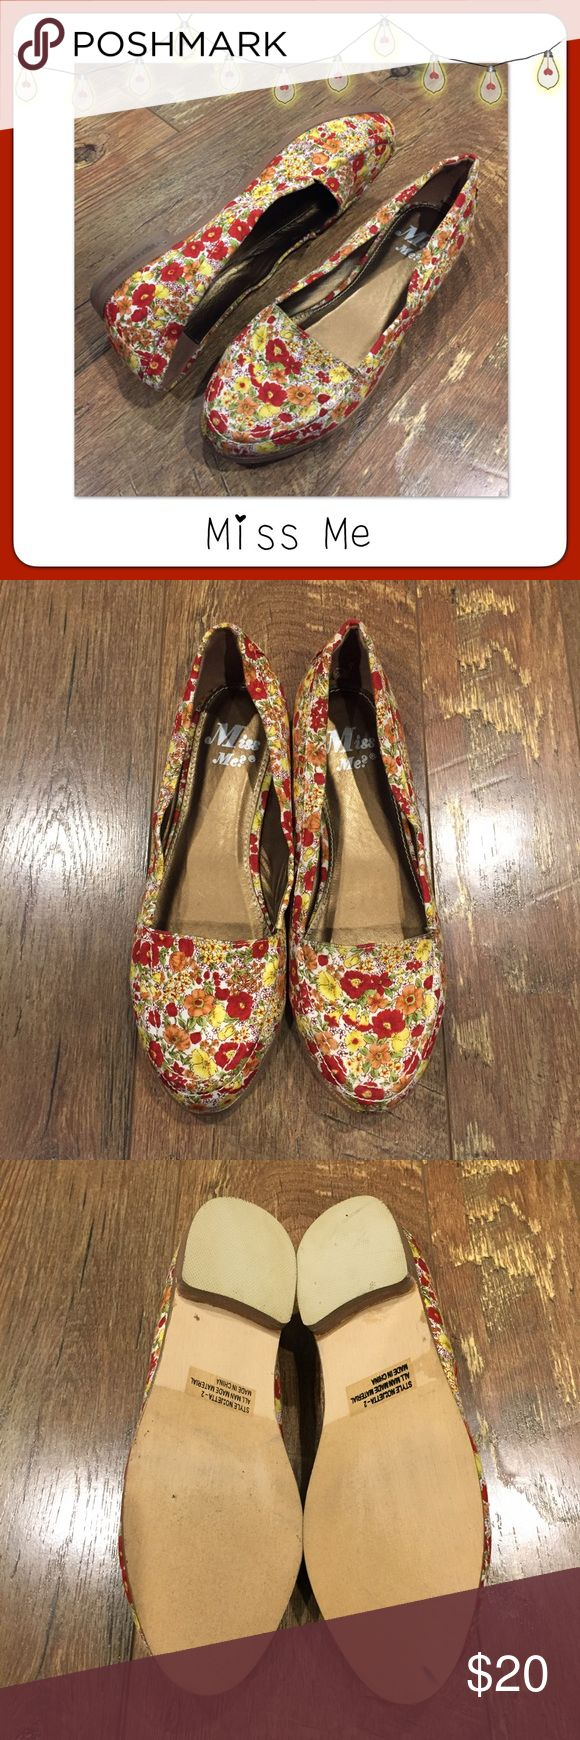 ⚫ BOGO 1/2 OFF Miss Me Floral Fabric Flats 🛍BOGO 1/2 OFF🛍 Fabulous, floral fabric flats! Barely worn and look great with pants or a skirt/dress Brand: Miss Me Size: 6 Miss Me Shoes Flats & Loafers